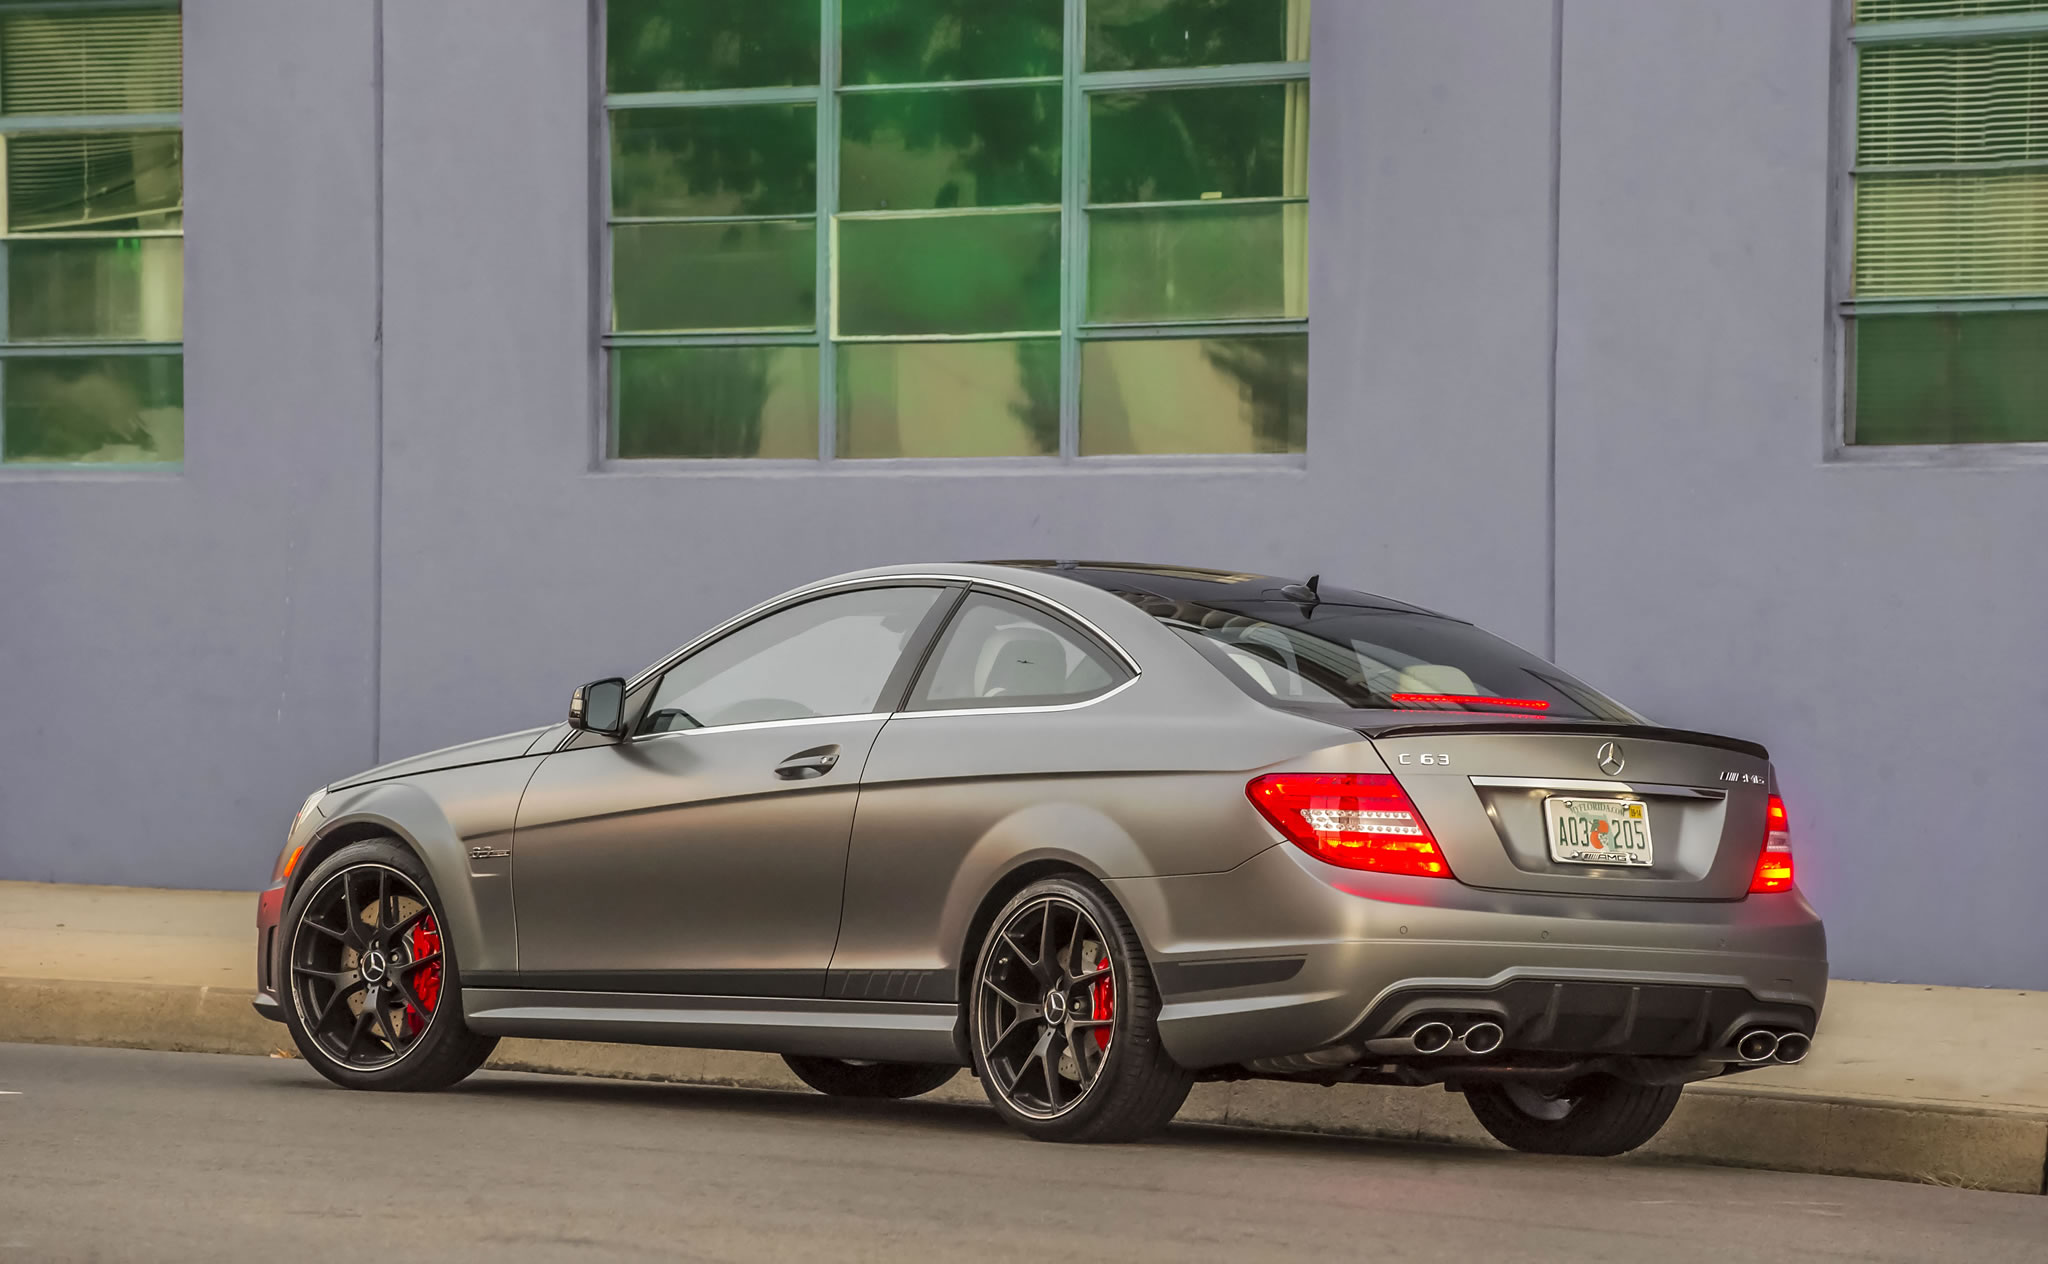 2019 Mercedes Benz C63 AMG Edition 507 photo - 5